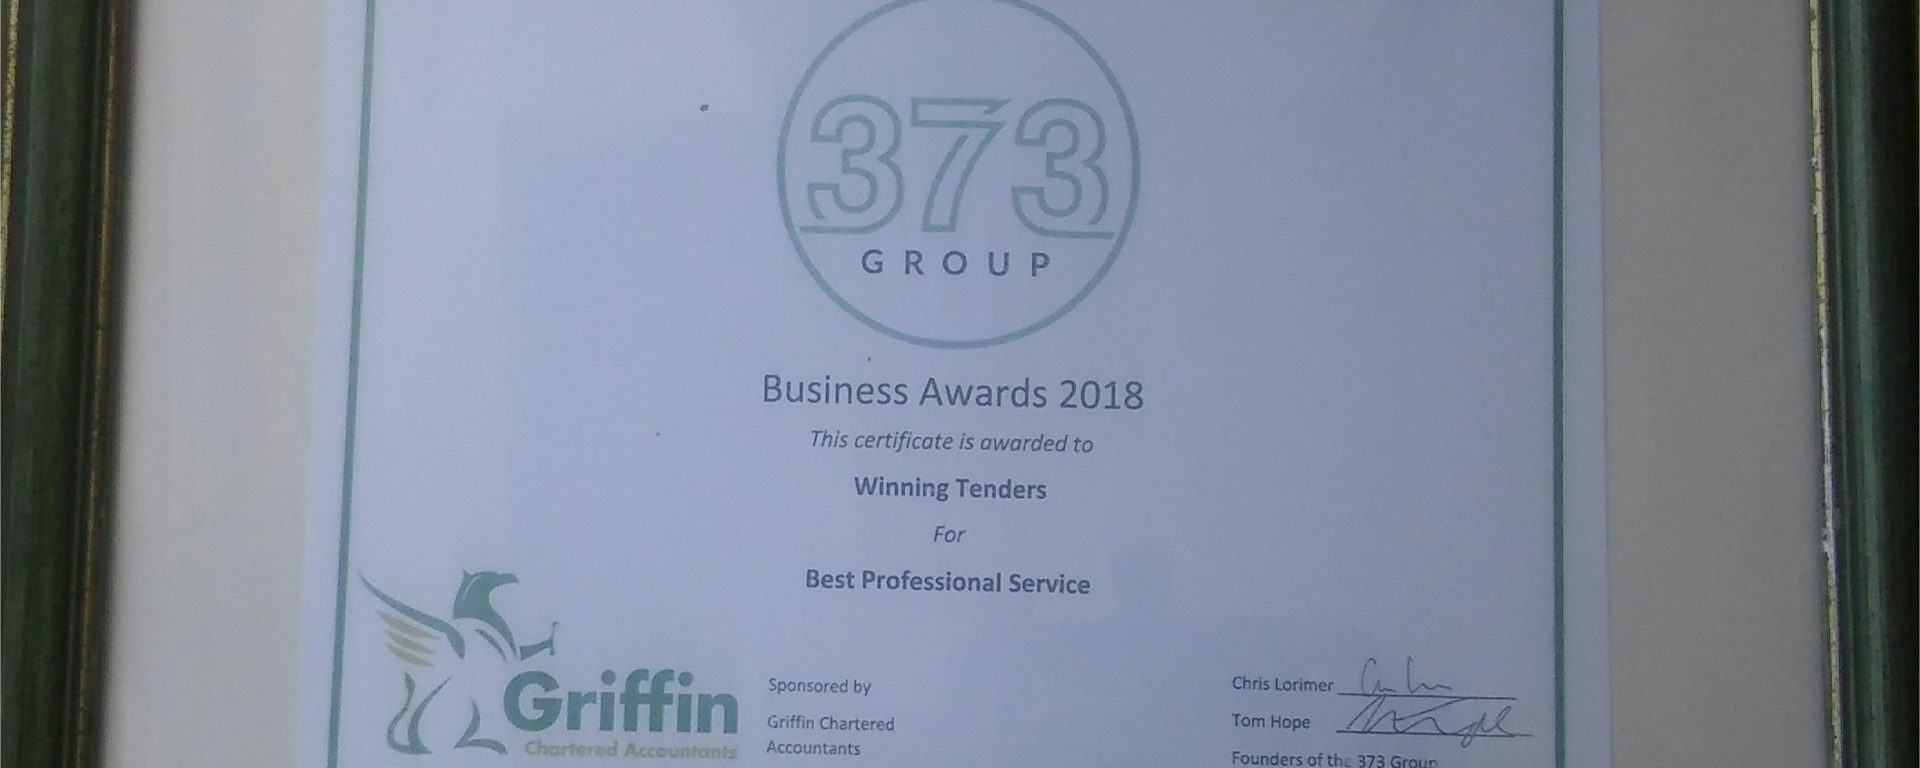 Best Professional Service 373 Business Award